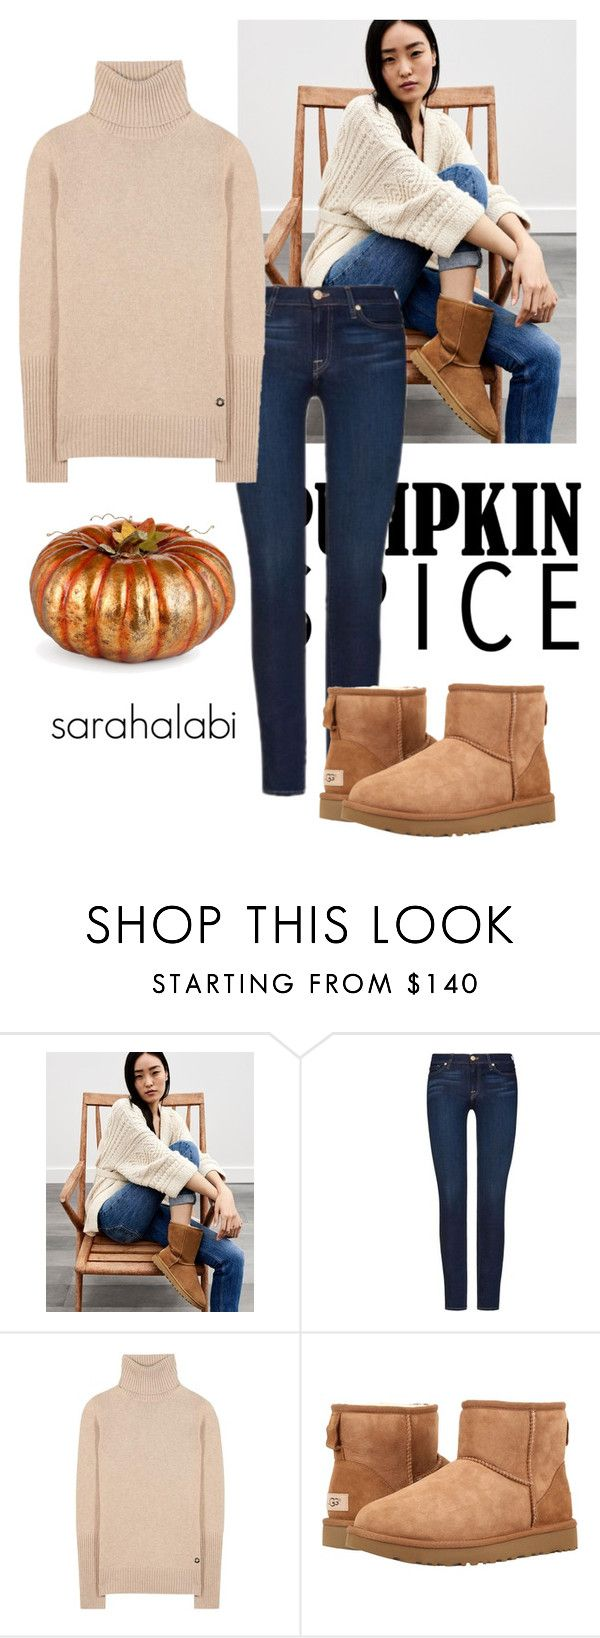 """we love us."" by sarsouur ❤ liked on Polyvore featuring UGG, 7 For All Mankind, Loro Piana, UGG Australia and Improvements"